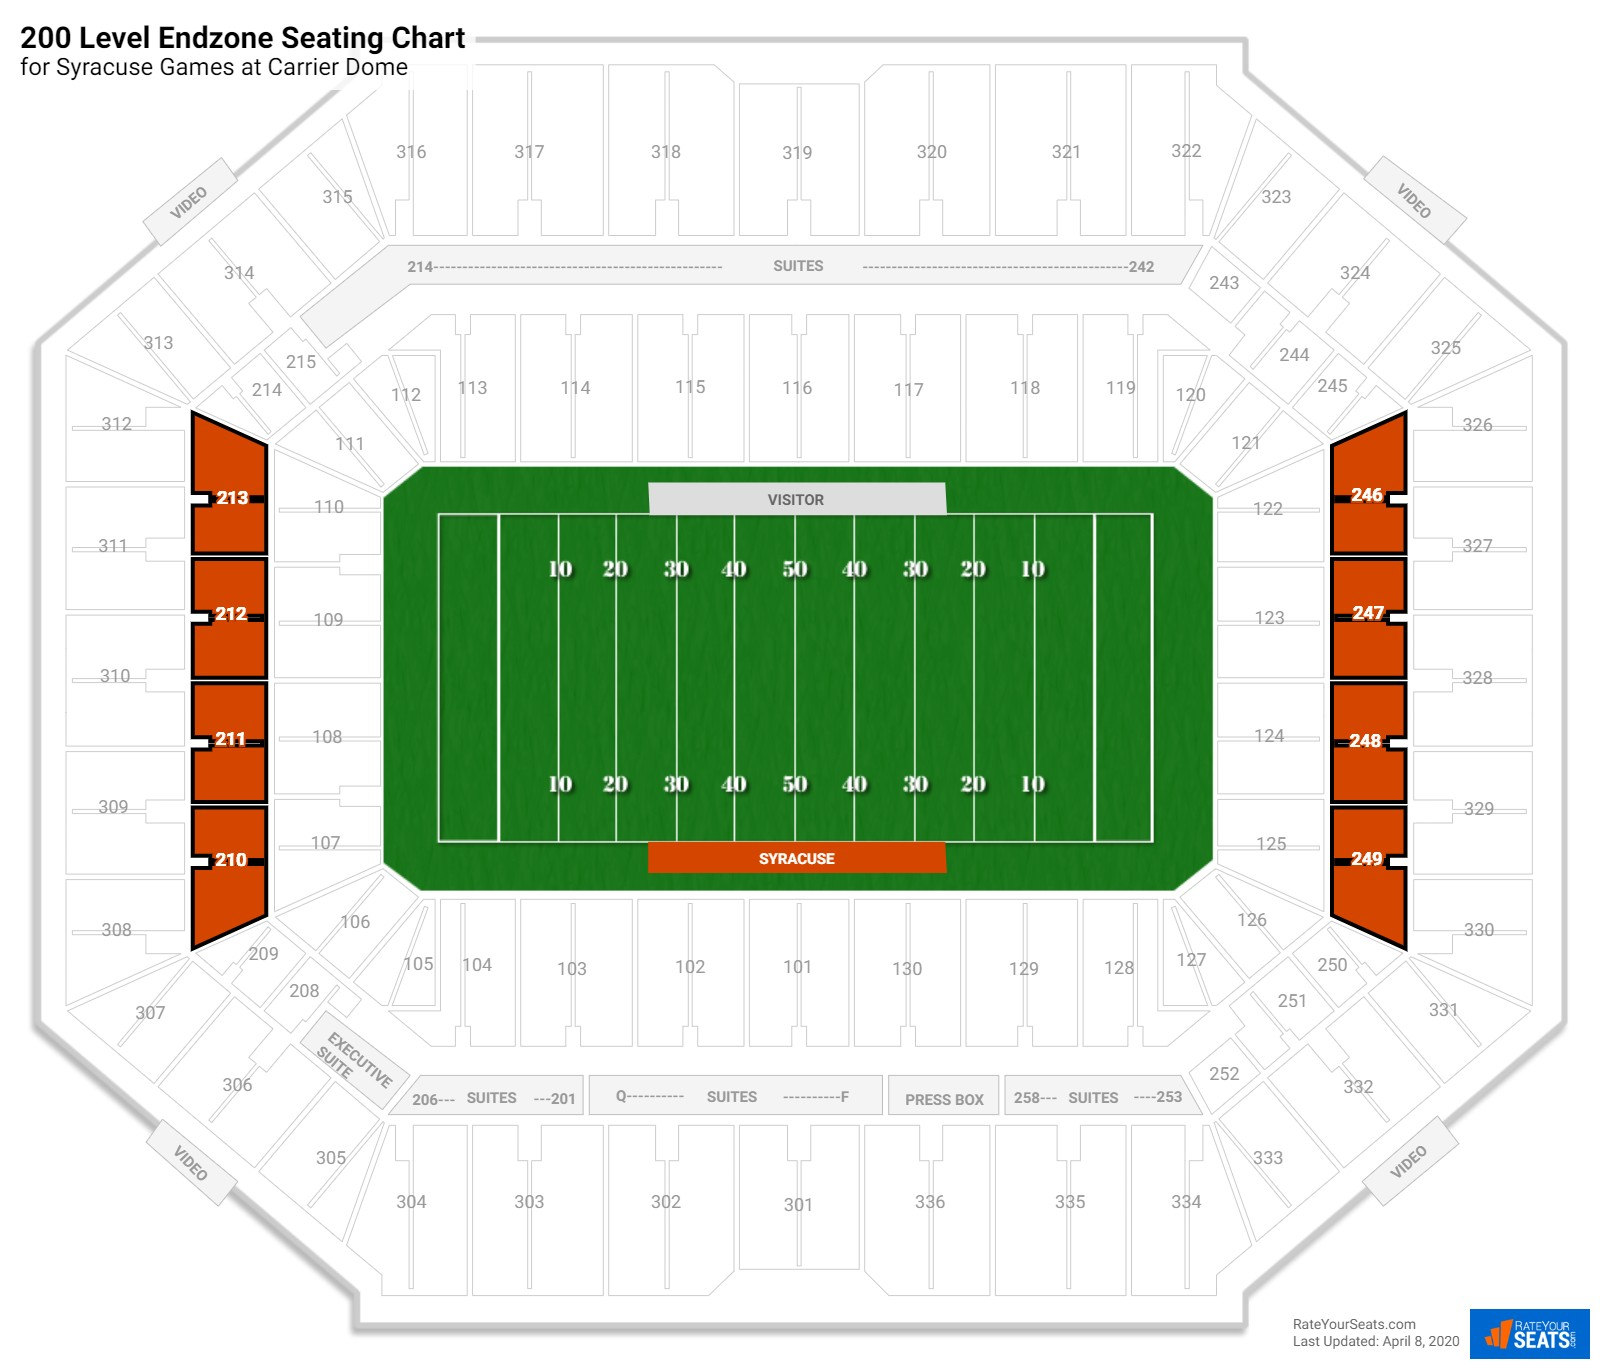 Carrier Dome 200 Level Endzone seating chart